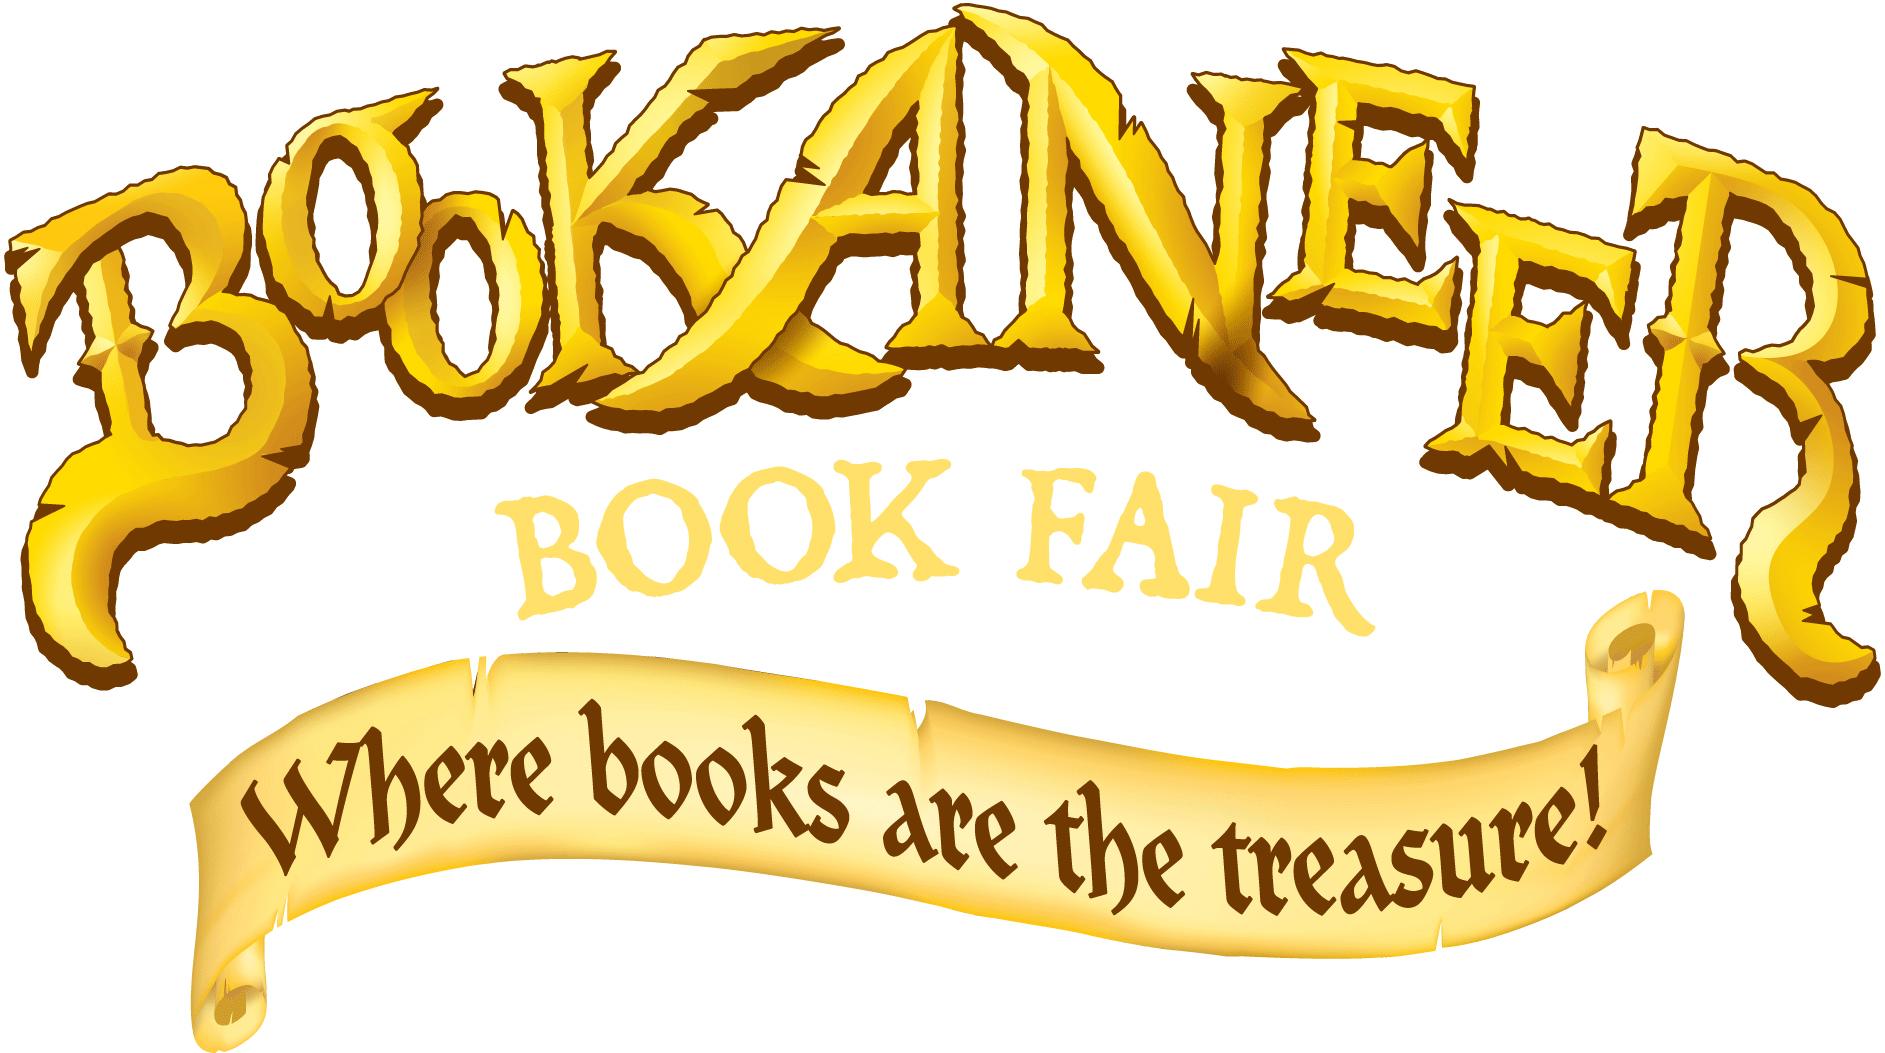 Bookaneer Book Fair Clip Art (1st Fair of the School Year)